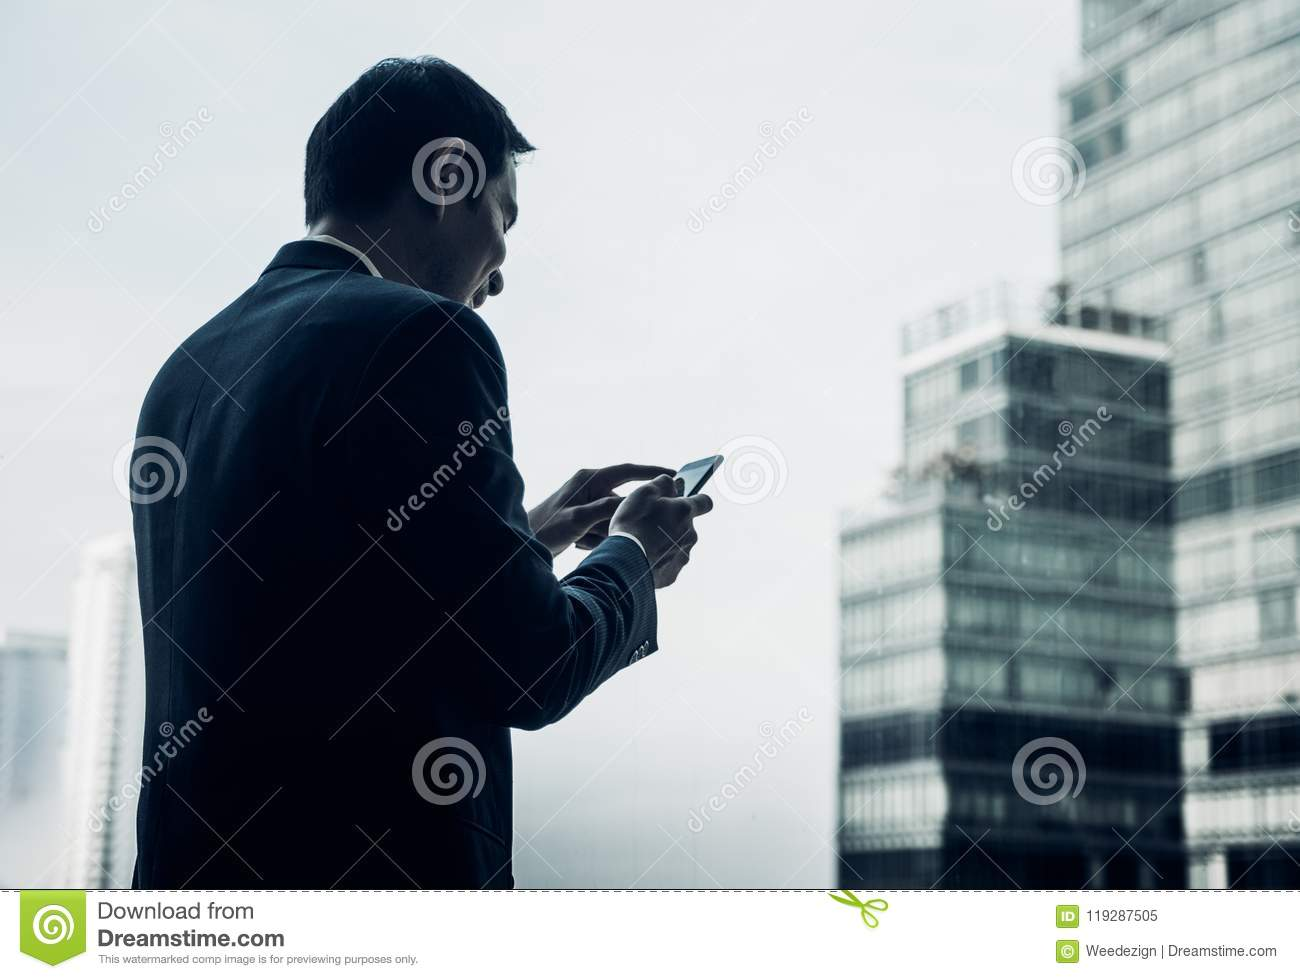 businessman using mobile phone near office window at office building,online business concept.